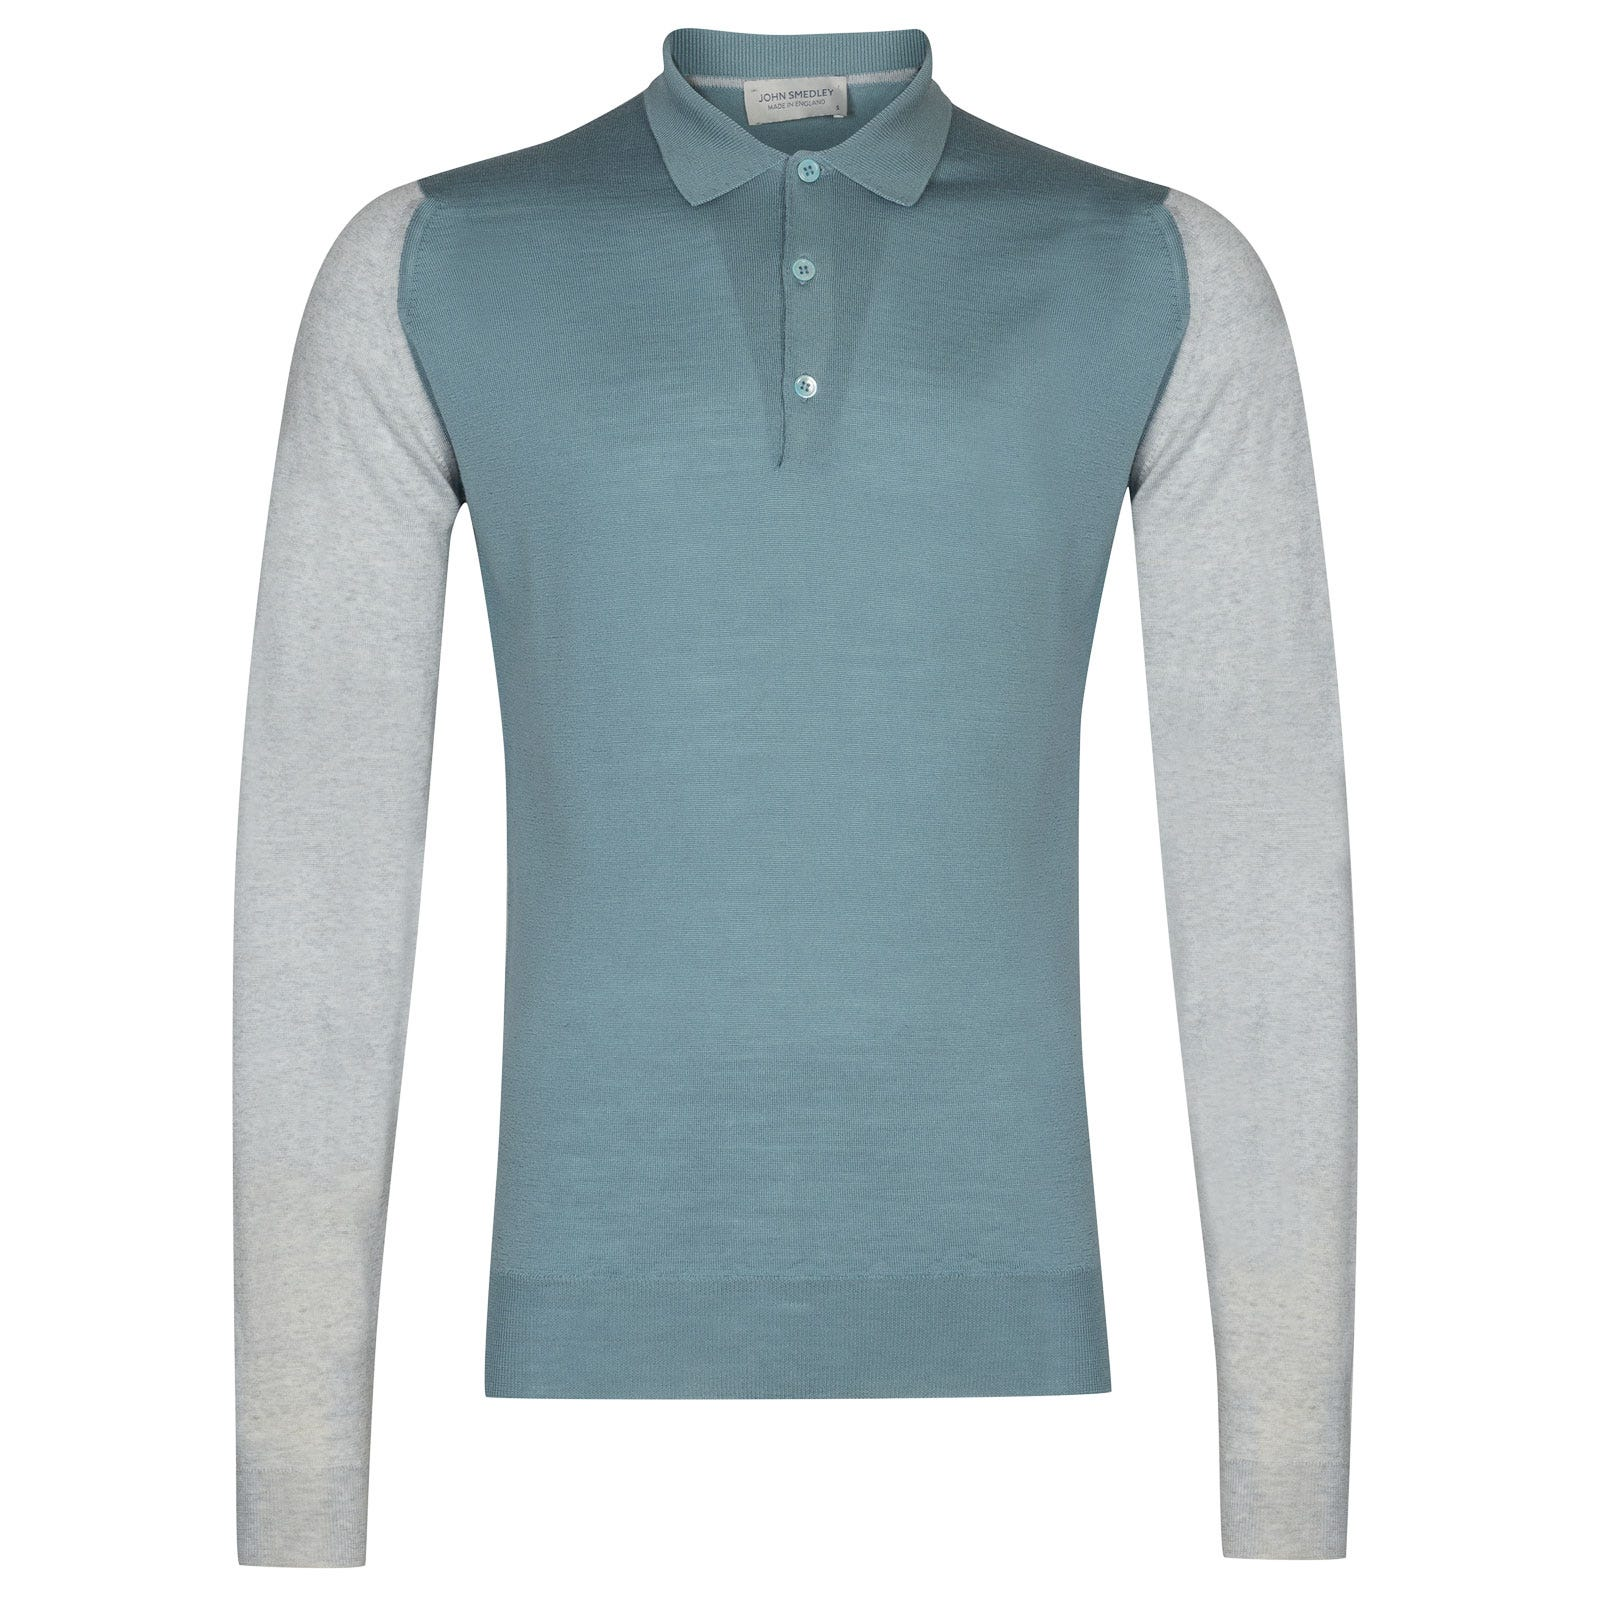 John Smedley Brightgate Merino Wool Shirt in Bardot Grey/Summit Blue-S